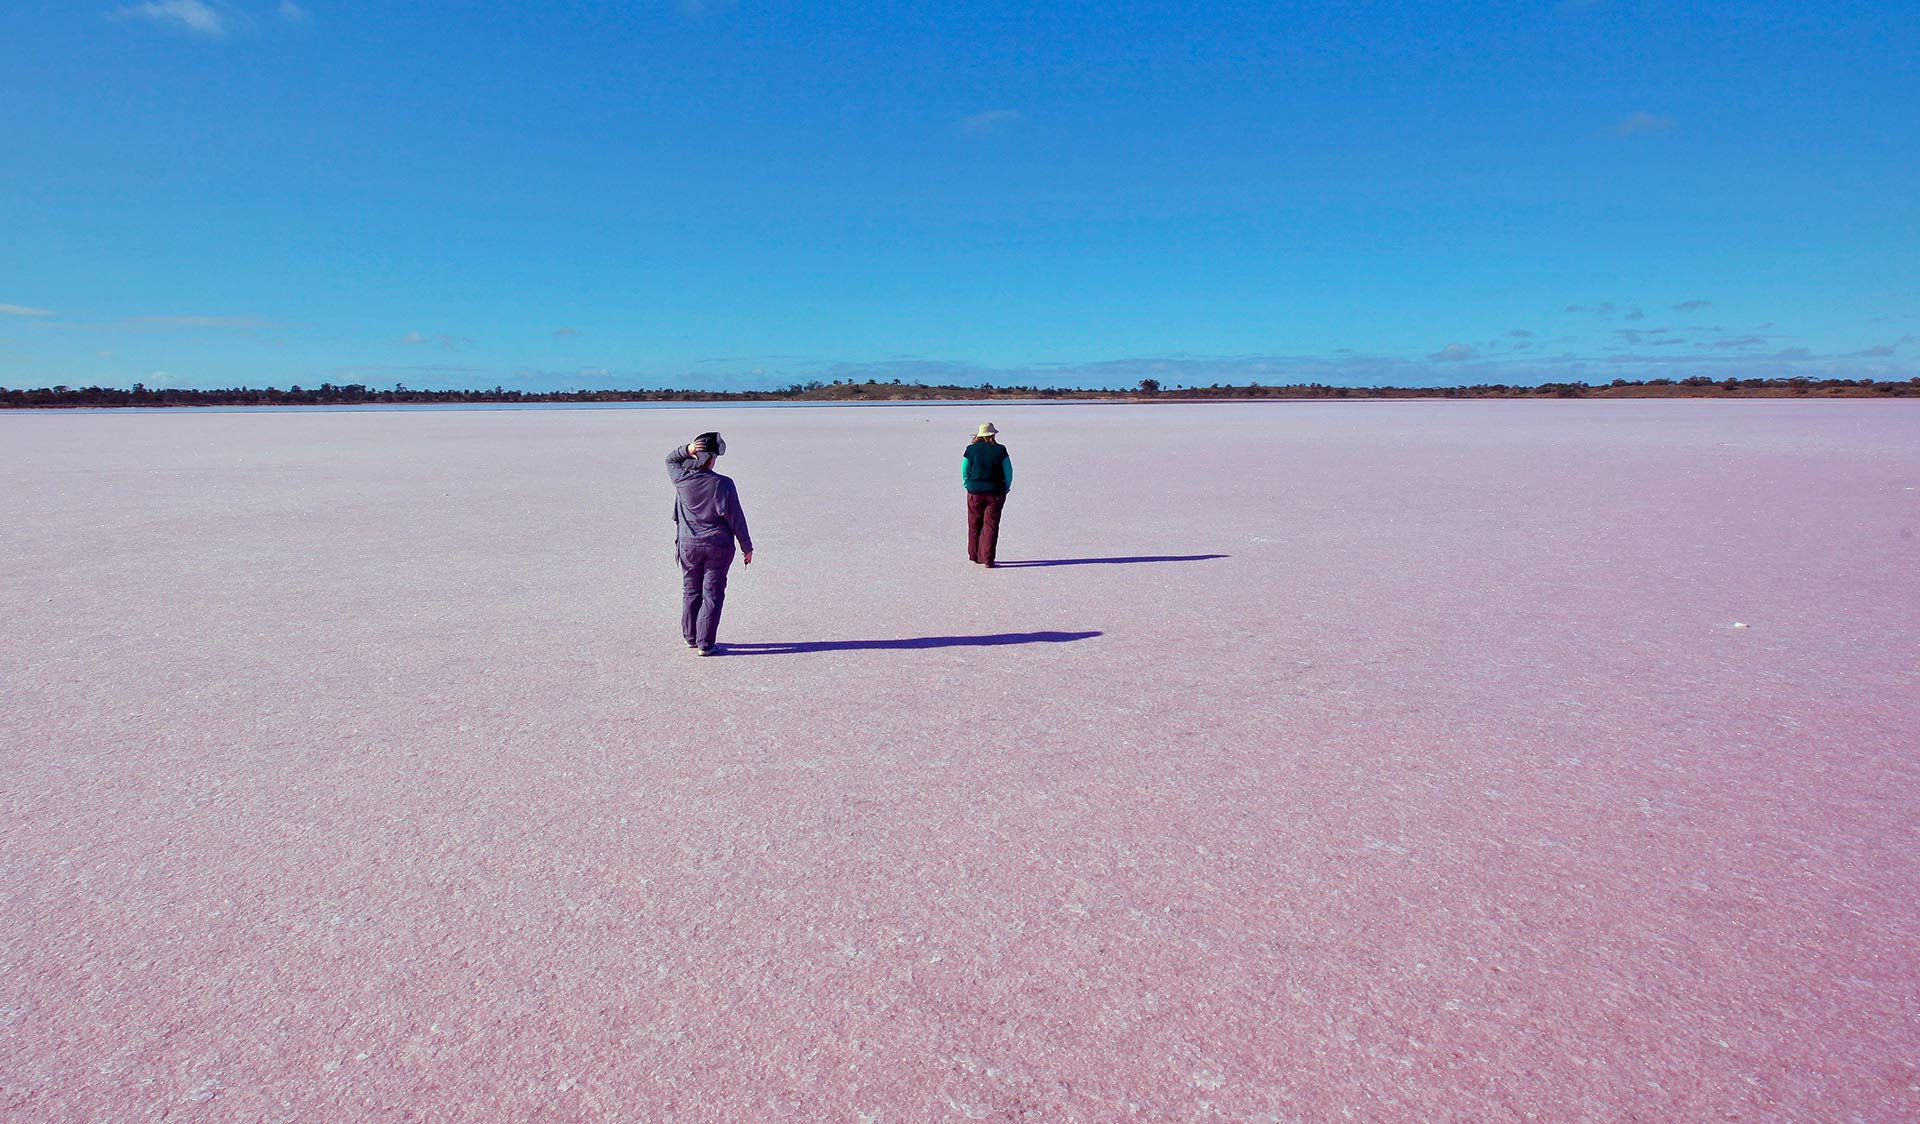 Two people walk across a dry pink salt lake.